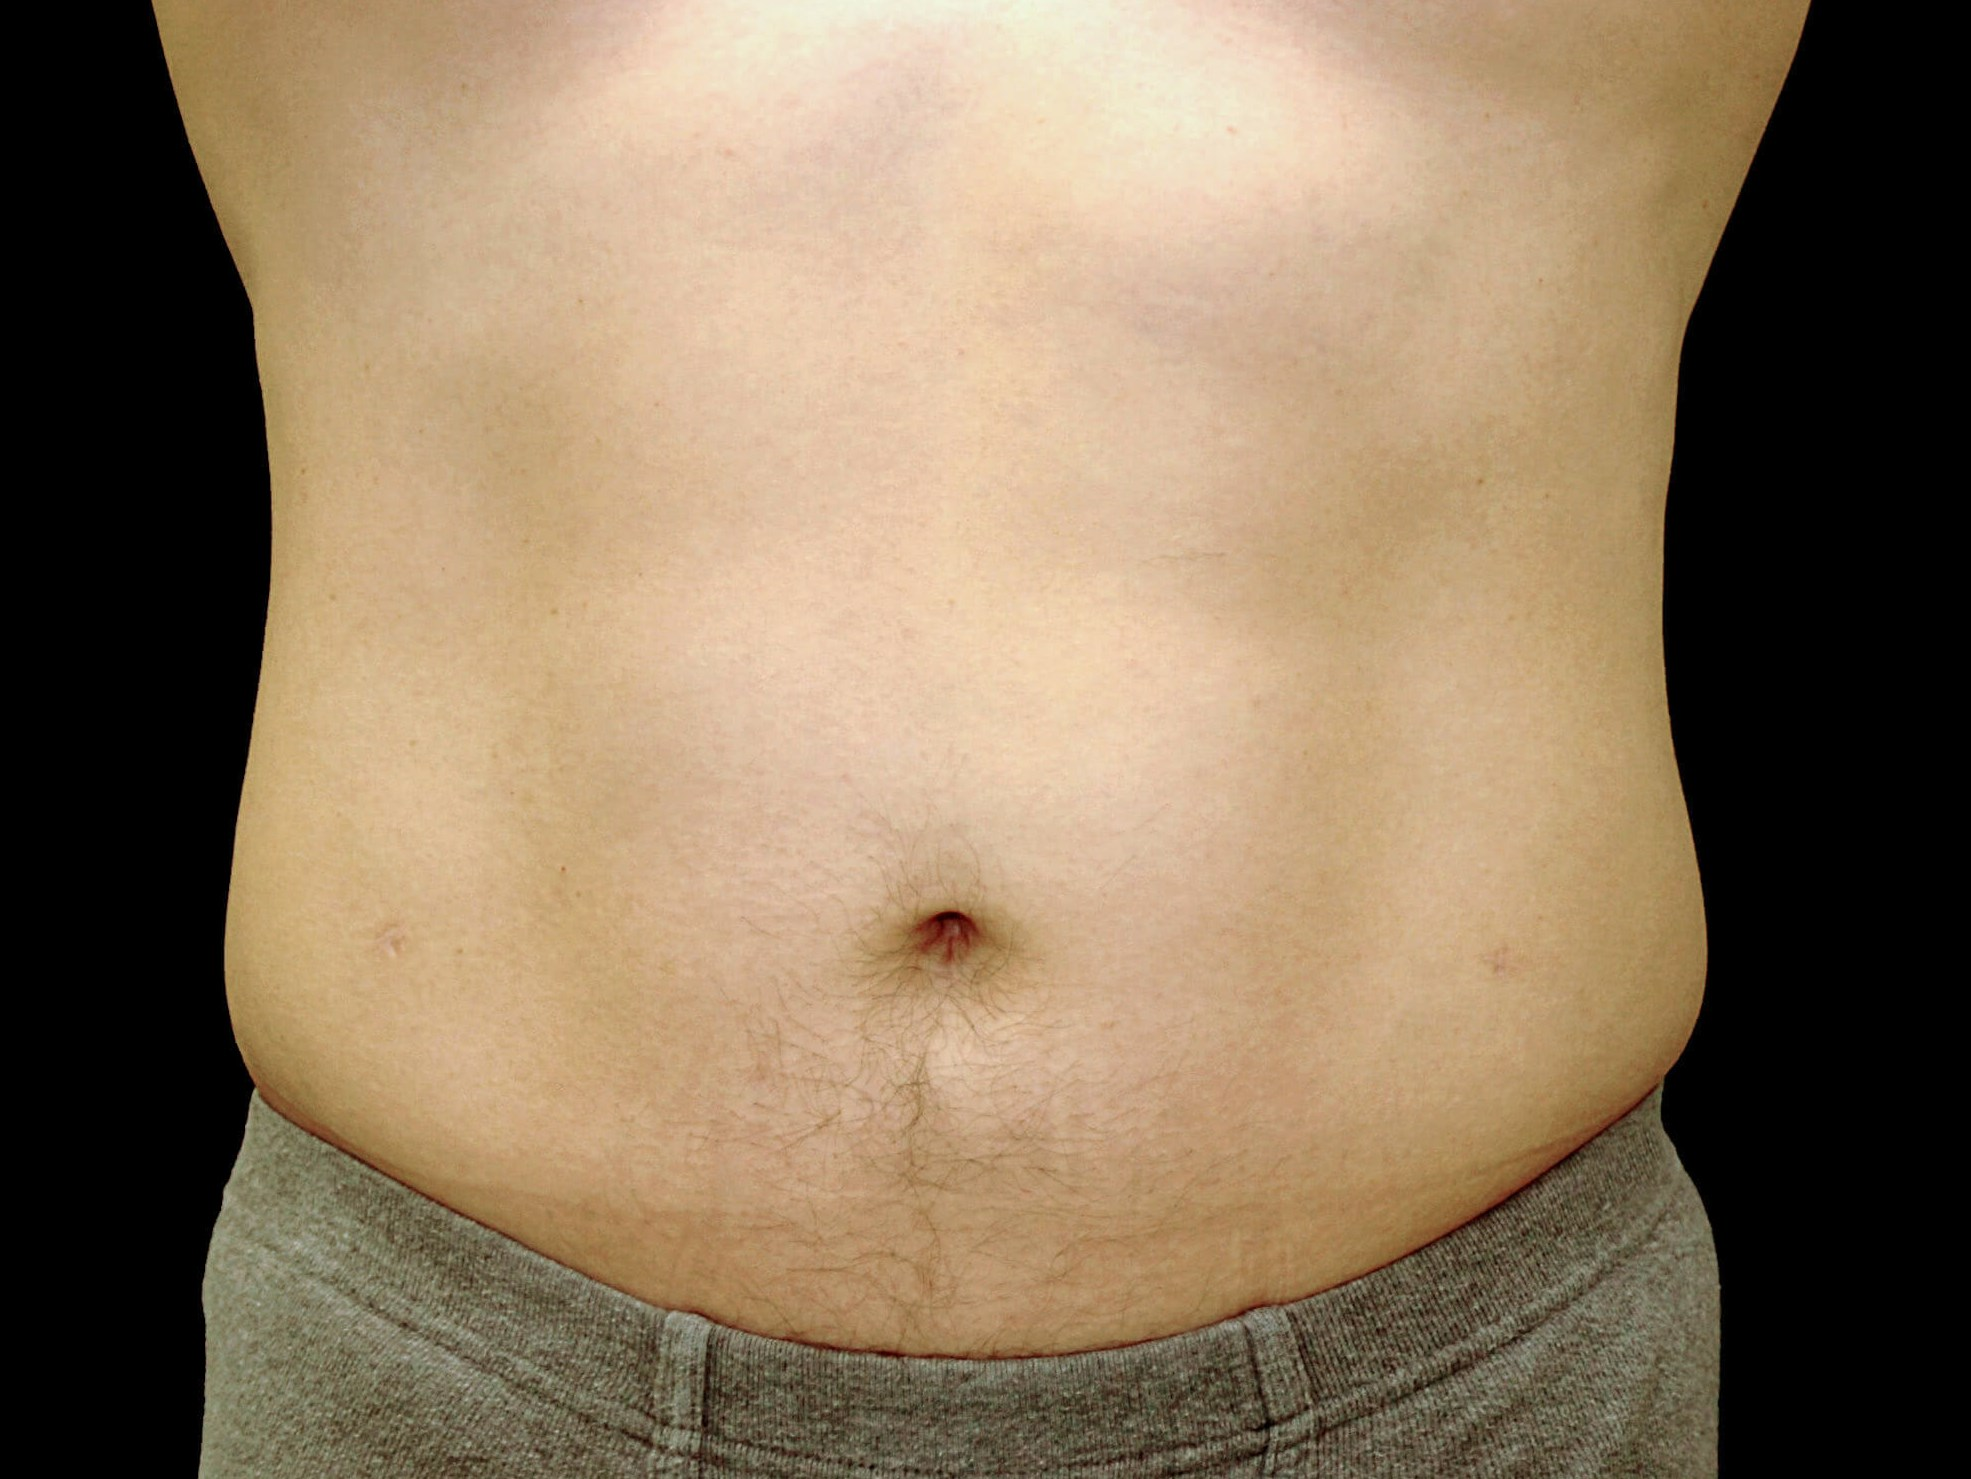 DALLAS MAN HAS VASER HIGH-DEFINITION LIPOSUCTION SURGERY